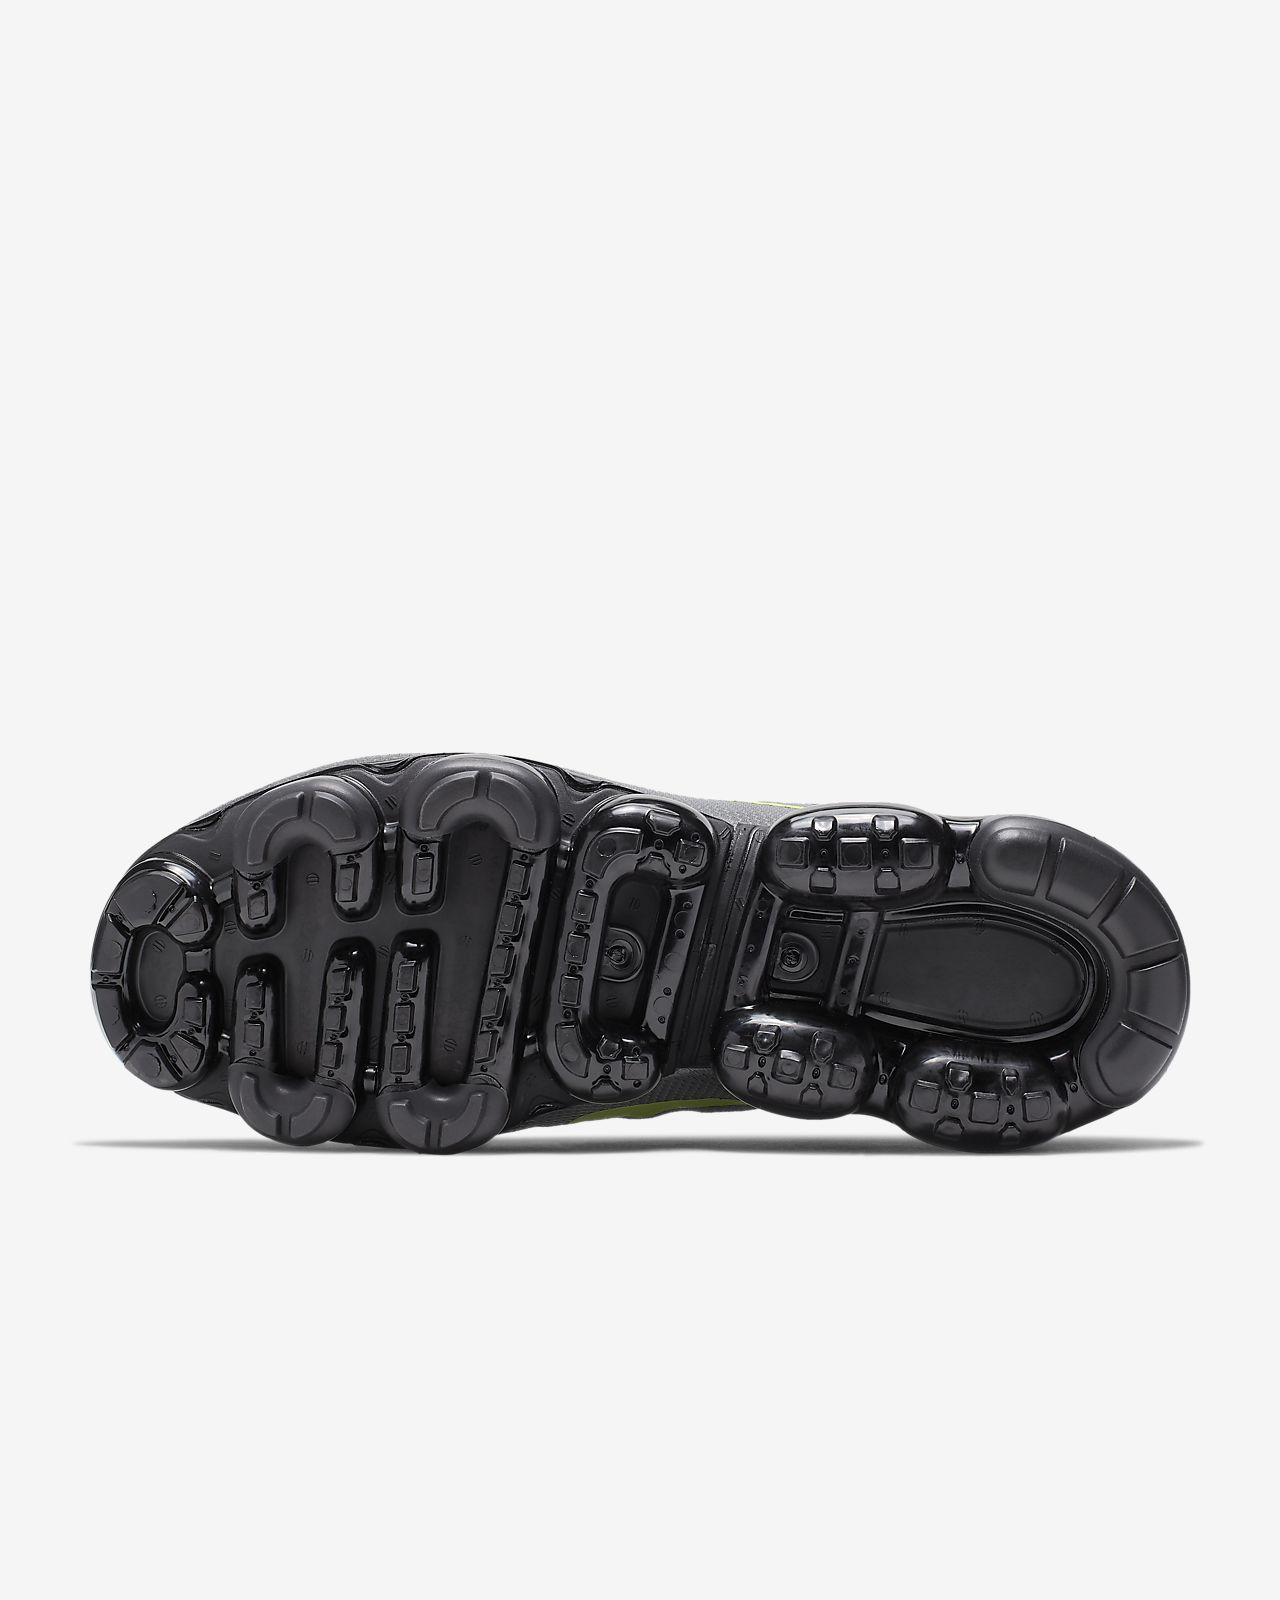 00bff2292ea Nike Air VaporMax 2019 Men s Shoe. Nike.com AU